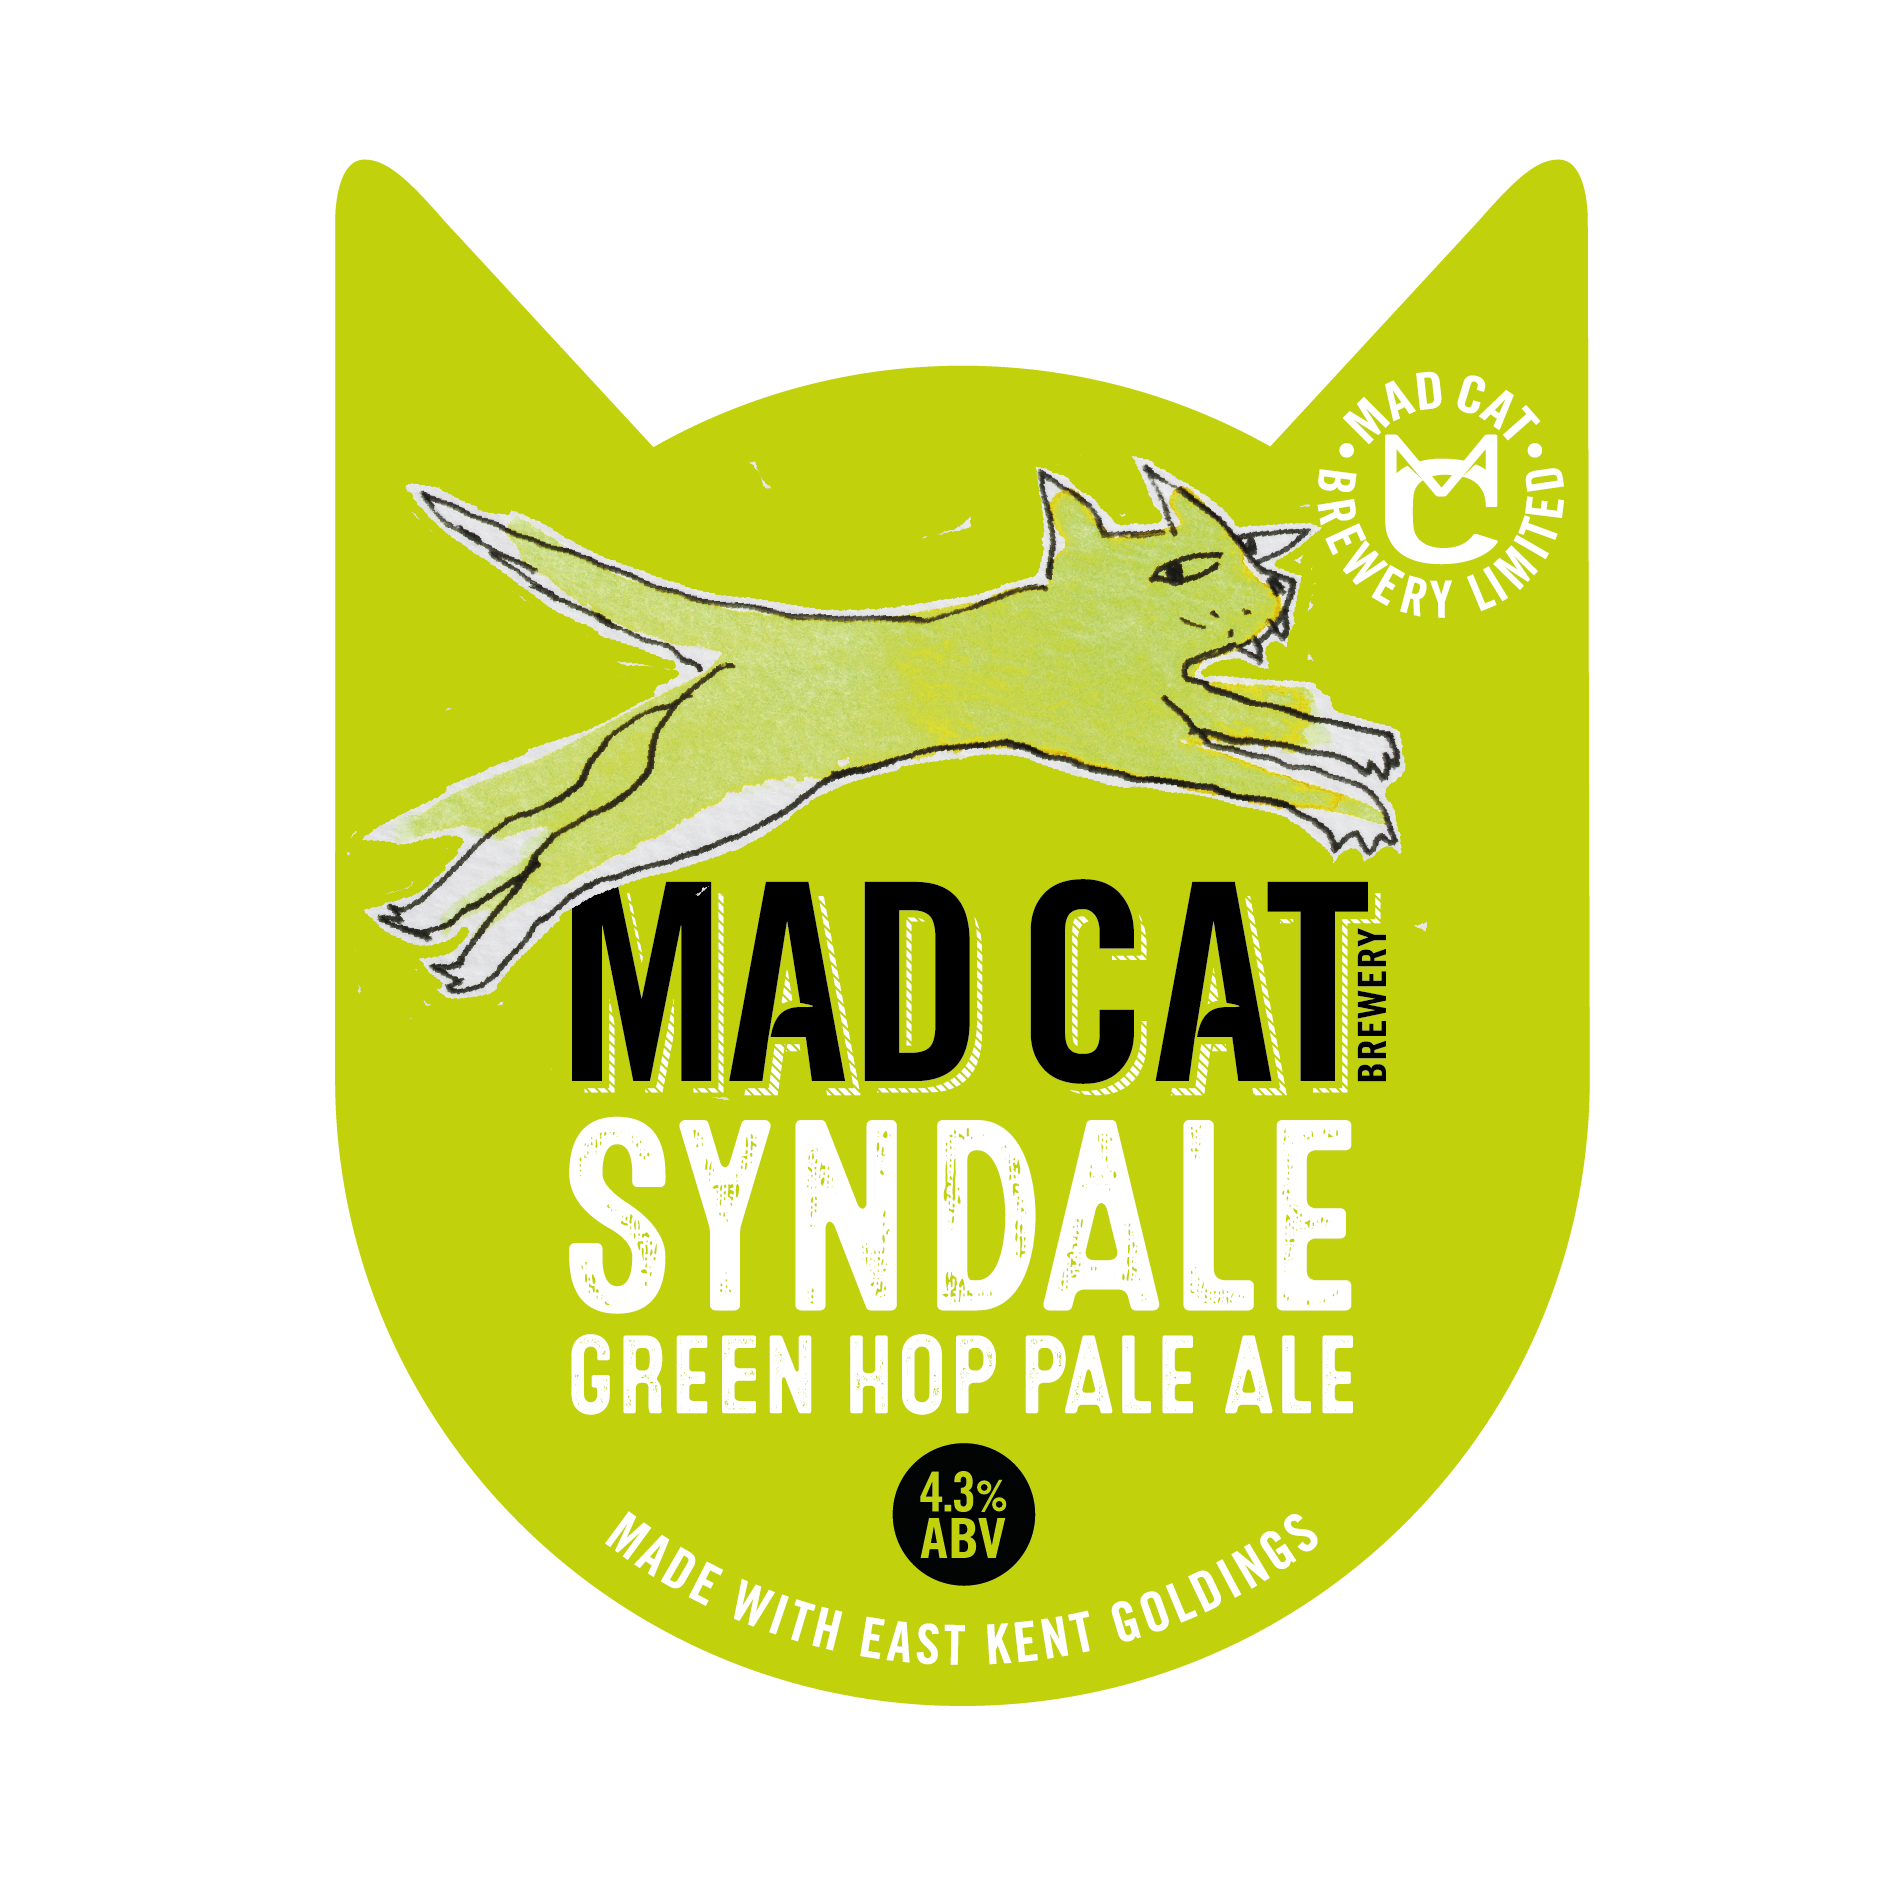 2018 pump clip visuals_SYNDALE GREEN HOP